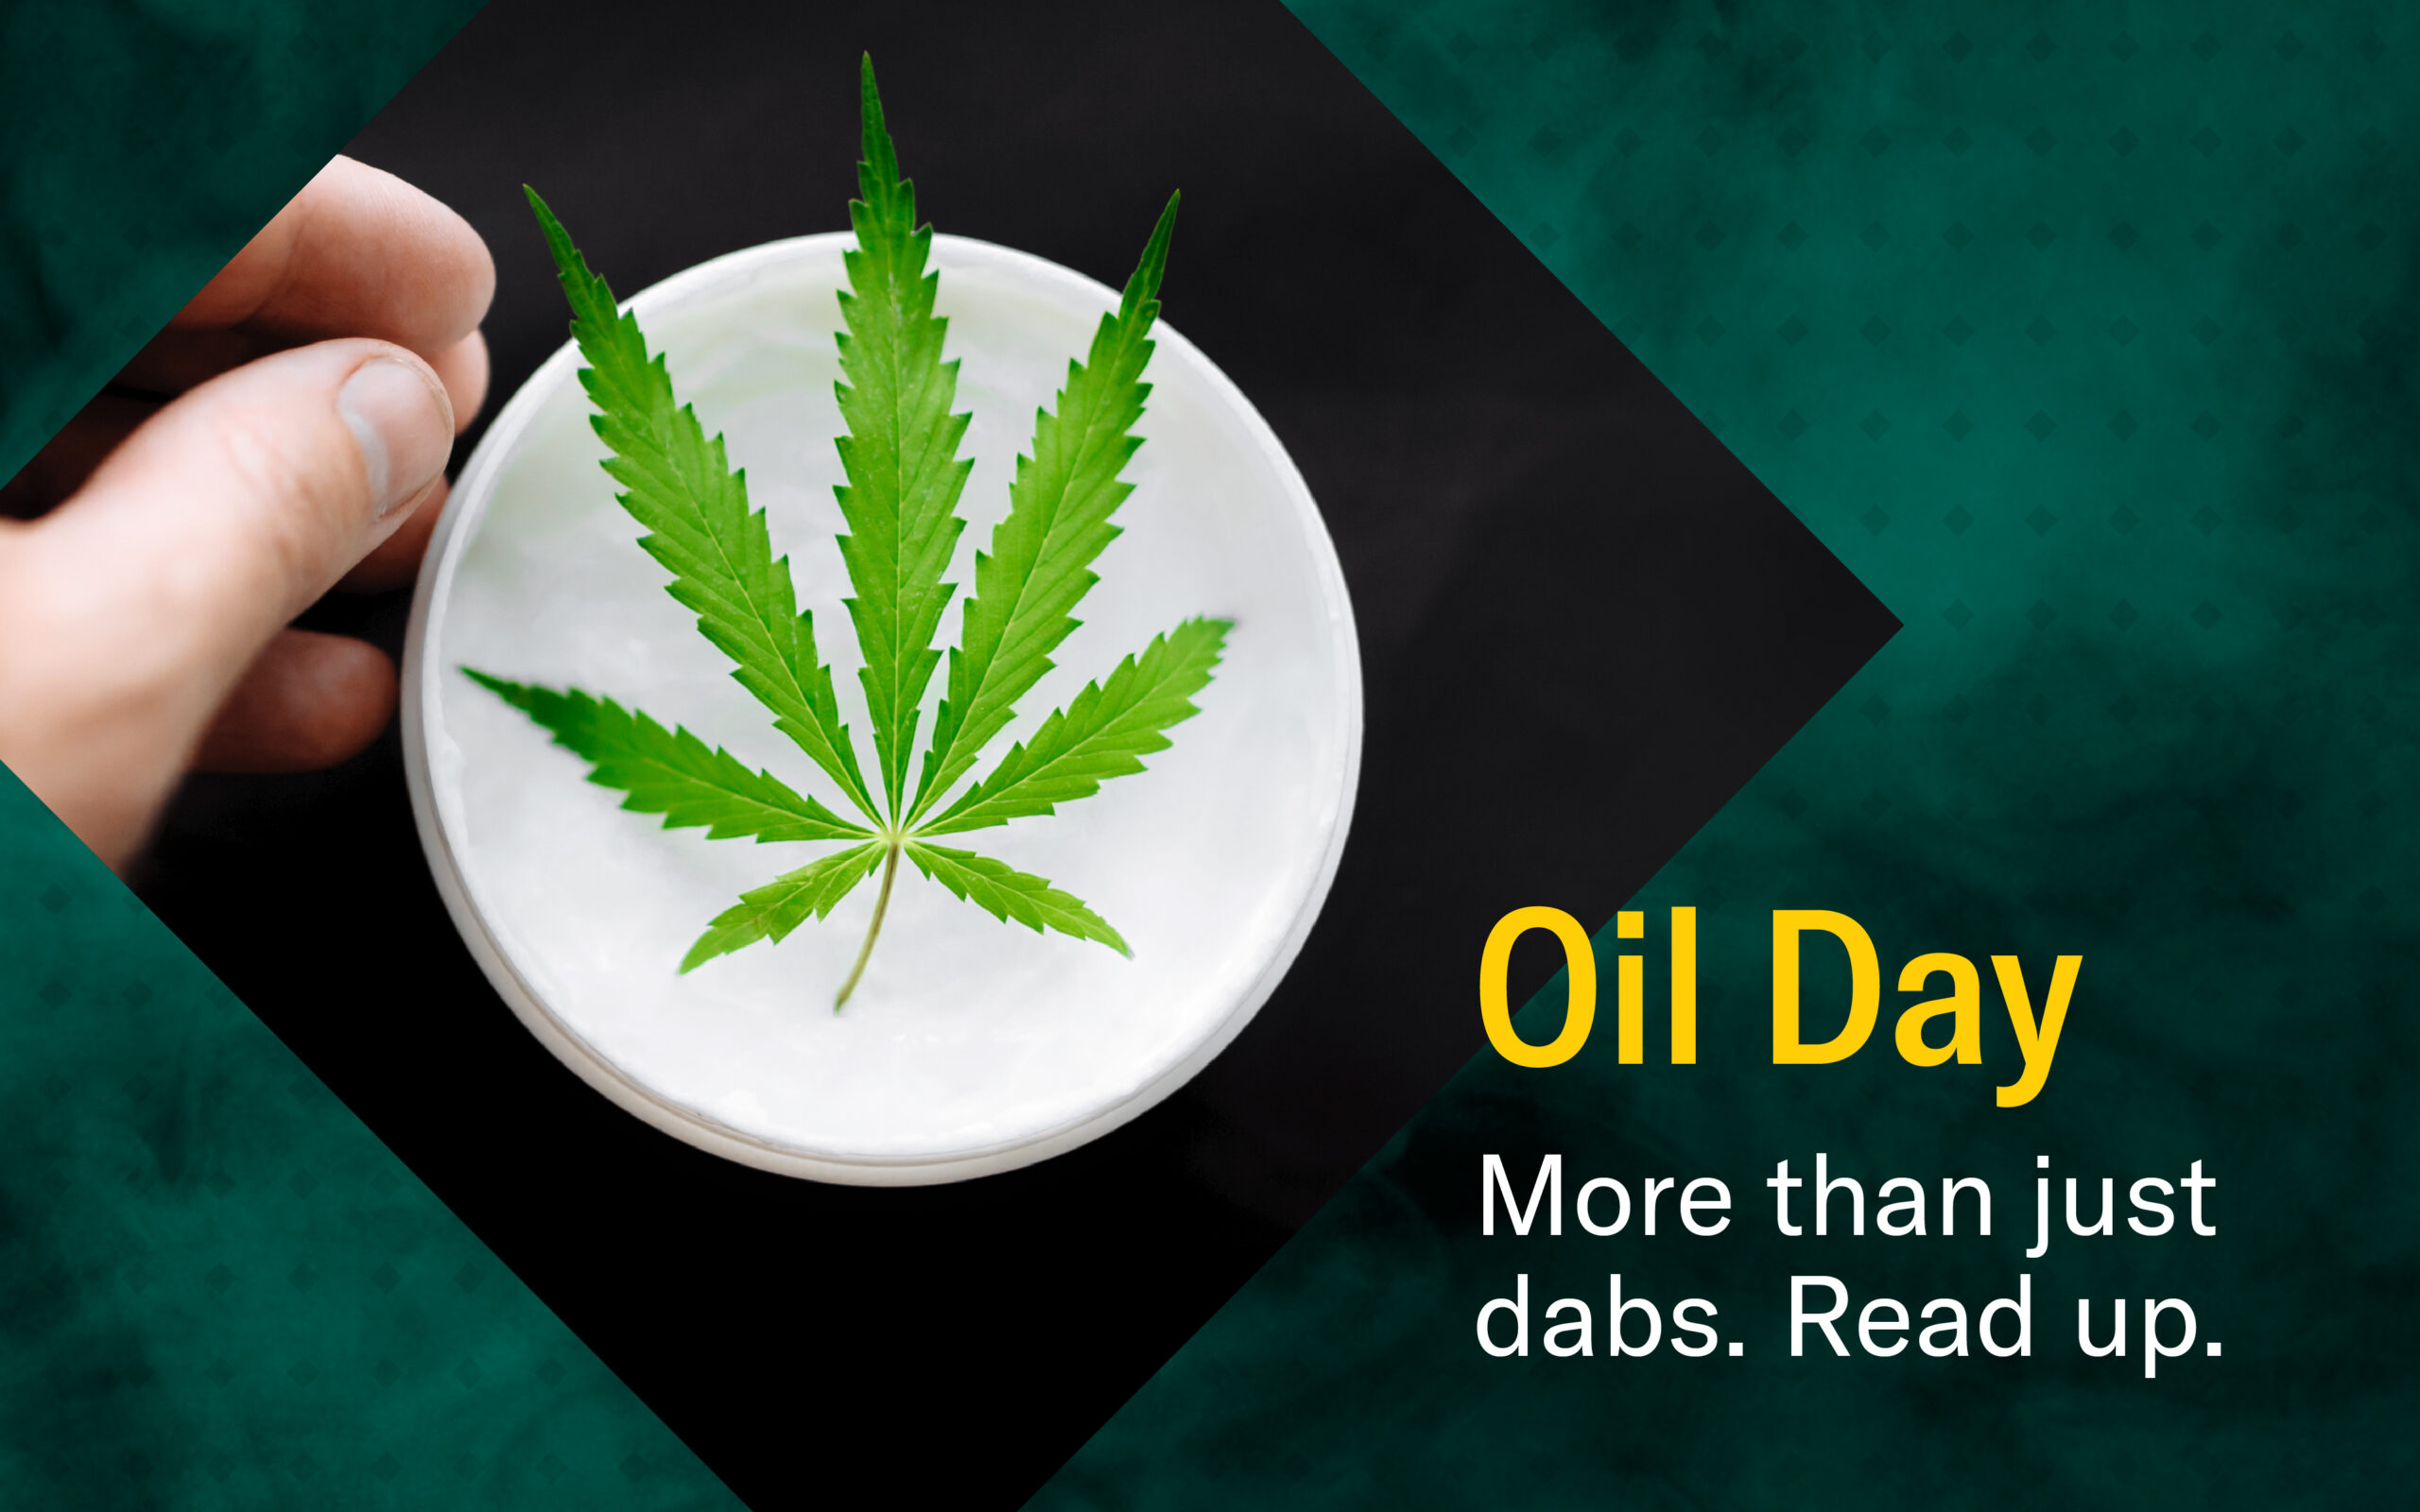 Oil Day is about more than just marijuana dabs